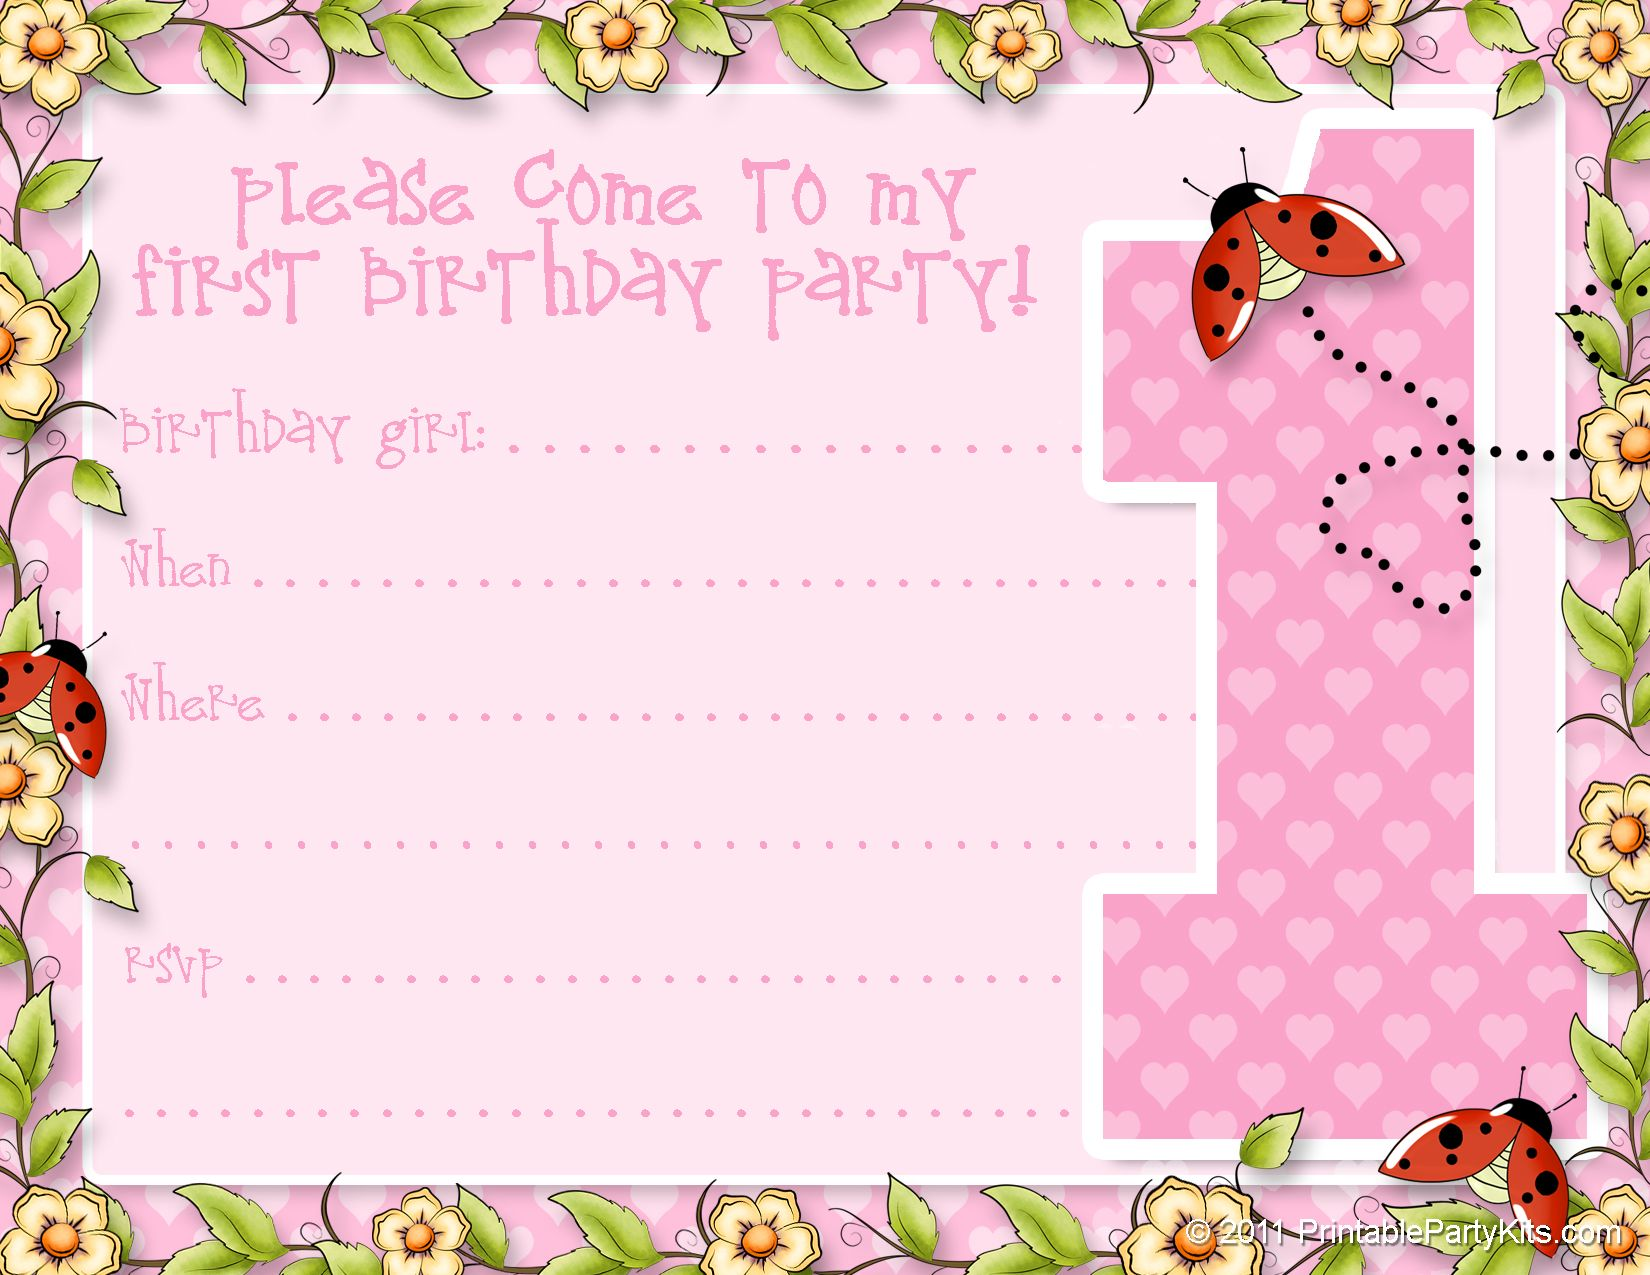 FREE PRINTABLE GIRLS 1ST BIRTHDAY INVITATION TEMPLATES